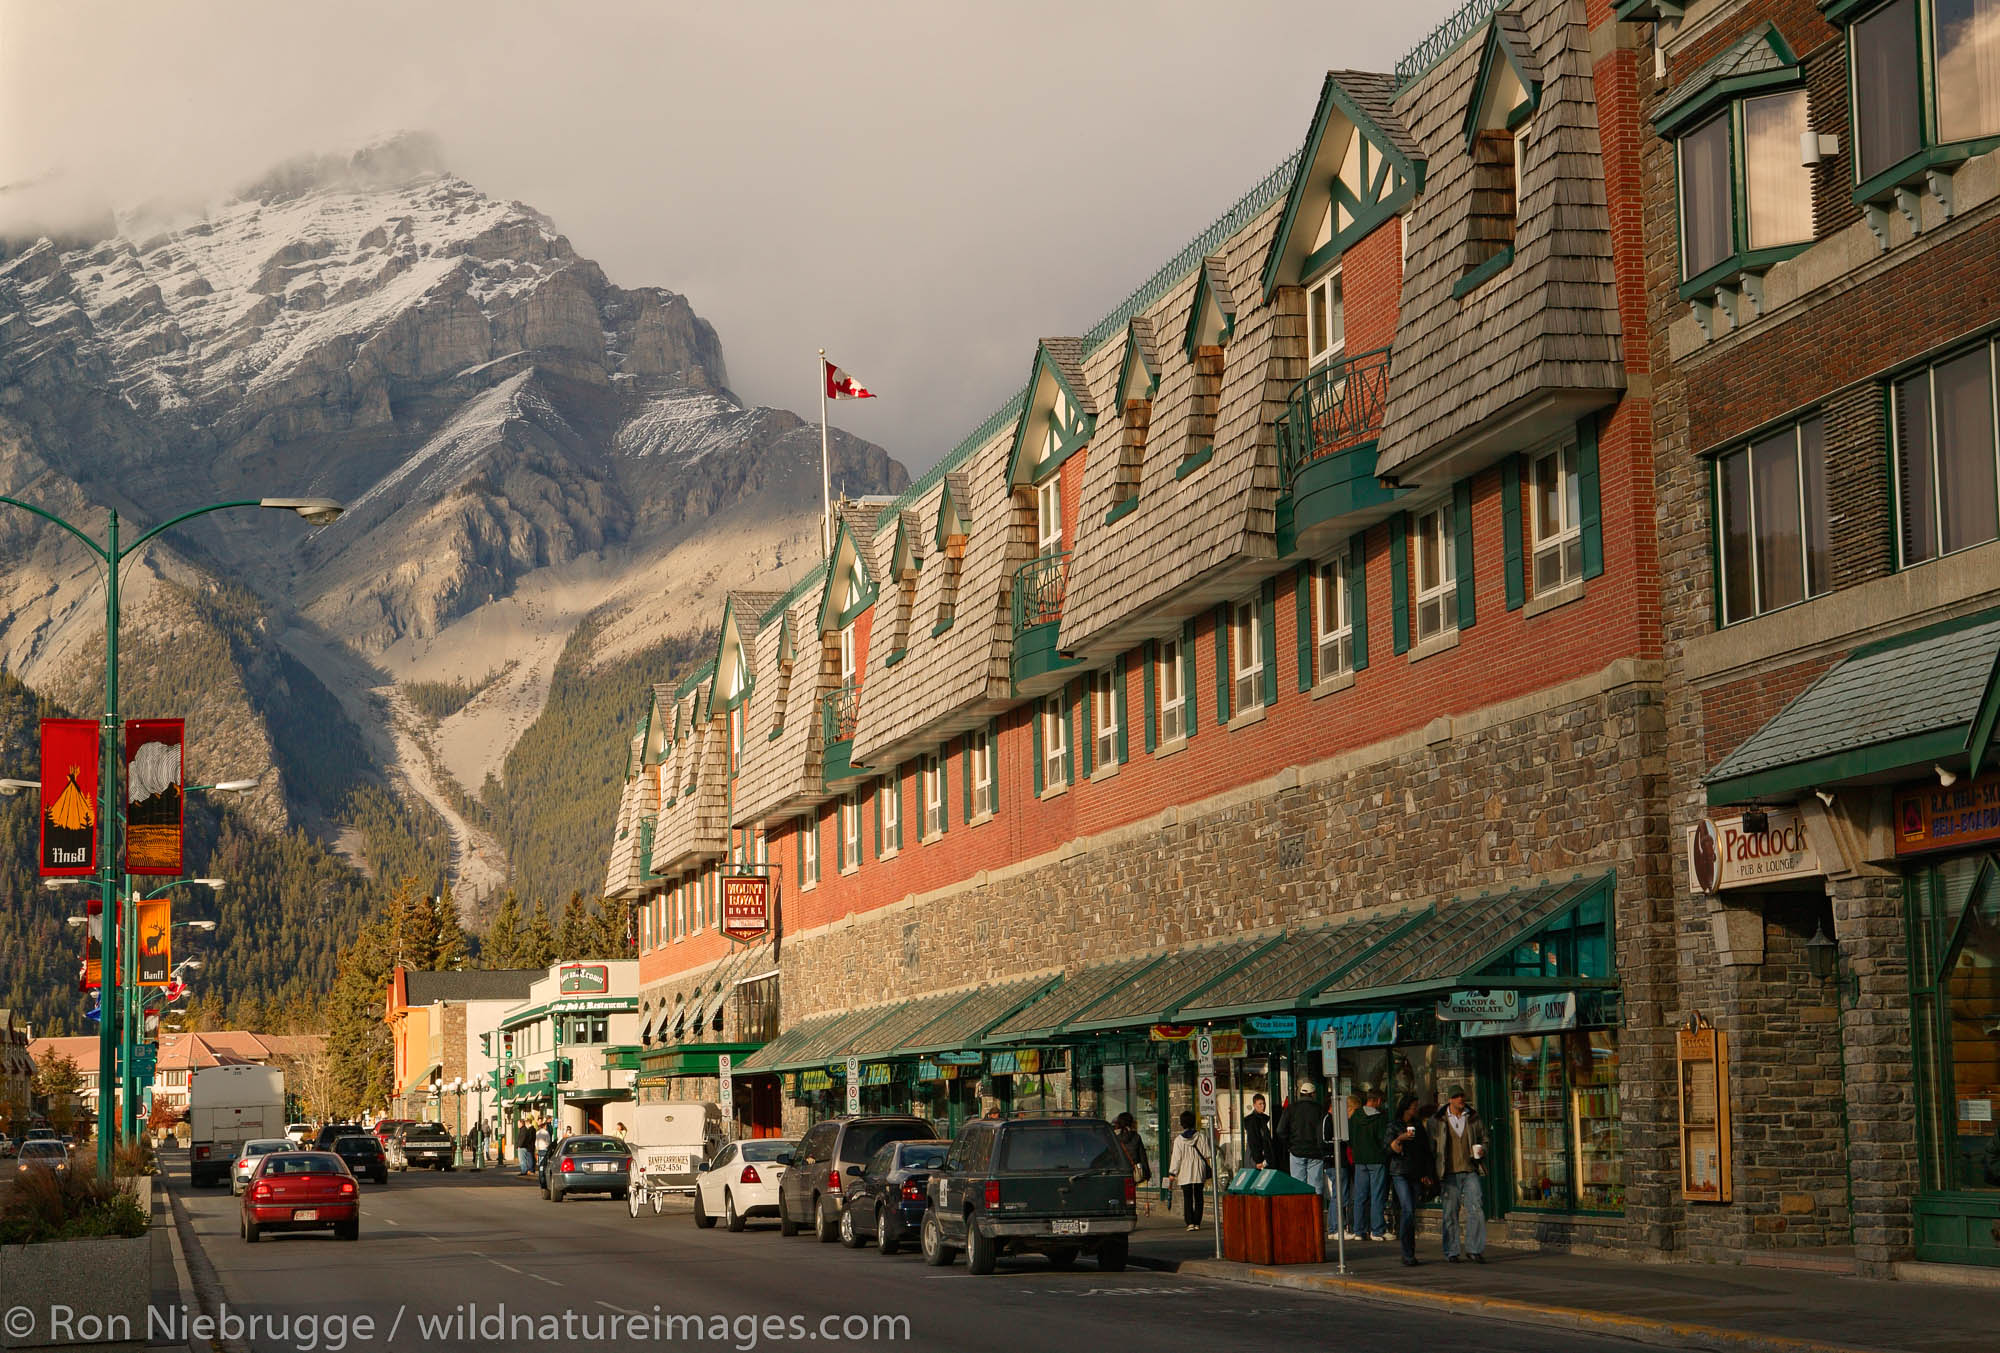 The Mount Royal Hotel in the town of Banff in Banff National Park, Alberta, Canada.